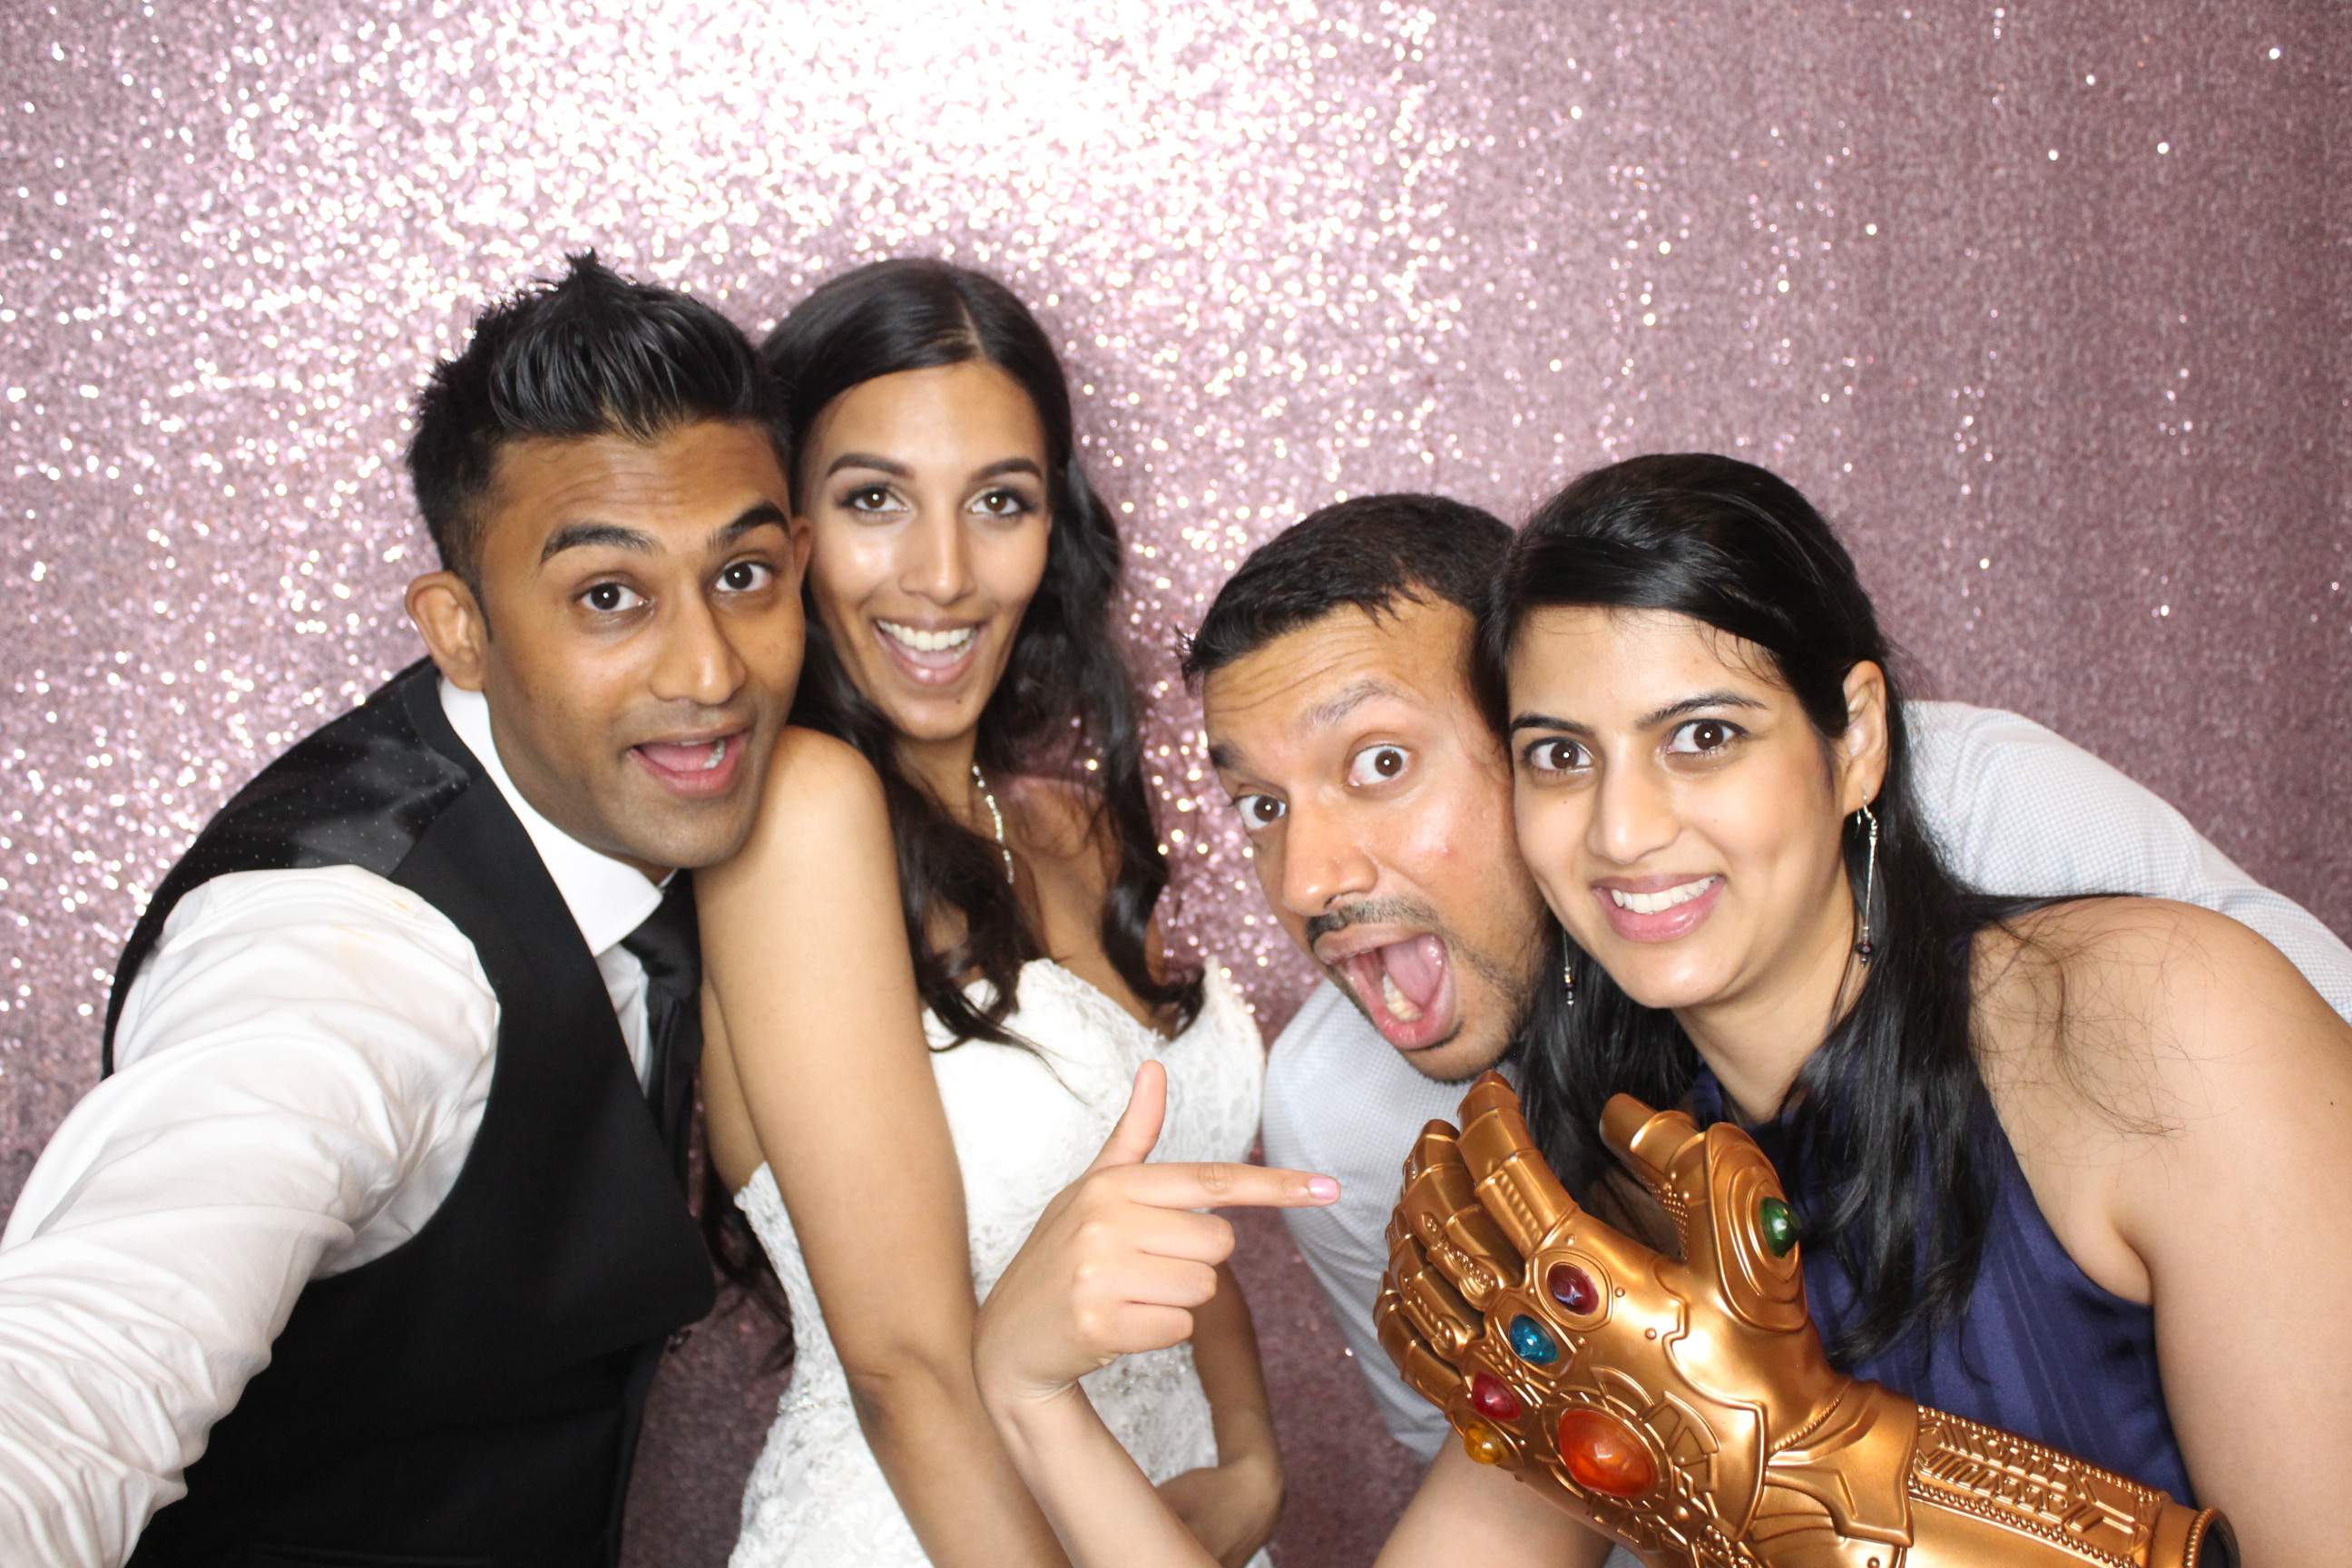 photo booth rental with rose gold background